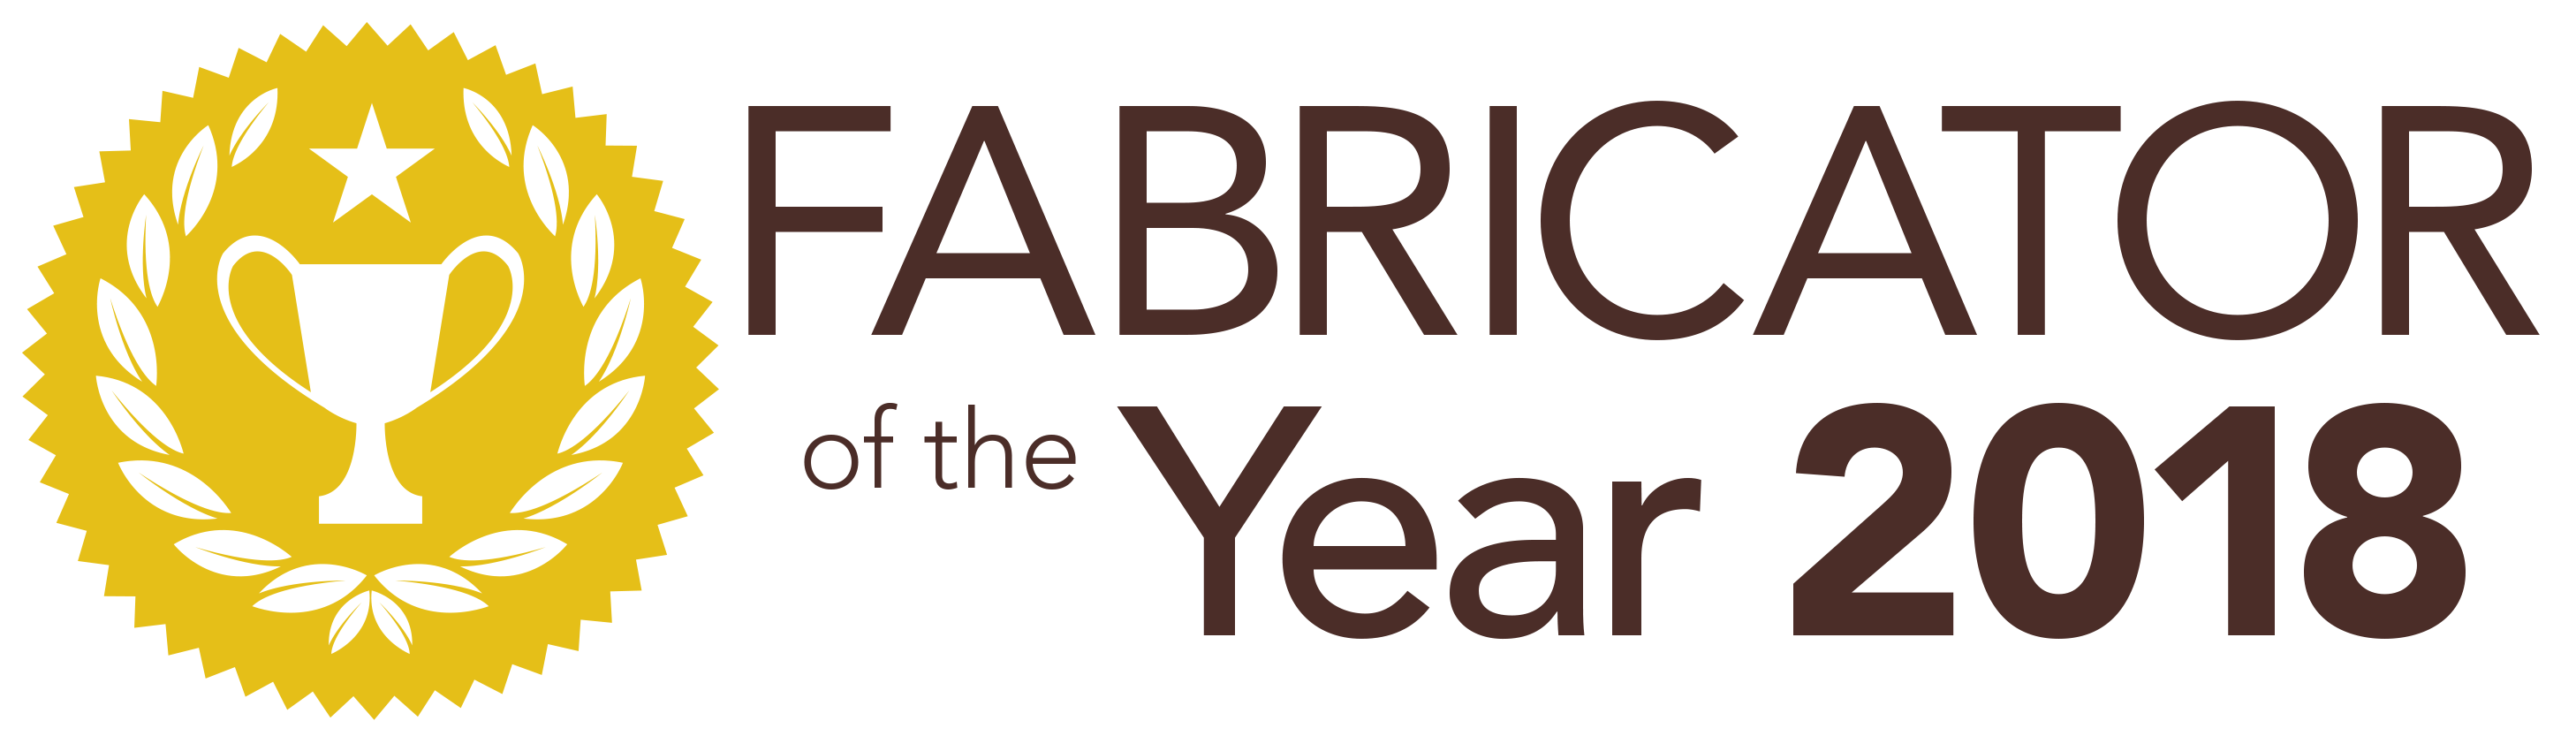 fabricator of the year 2018